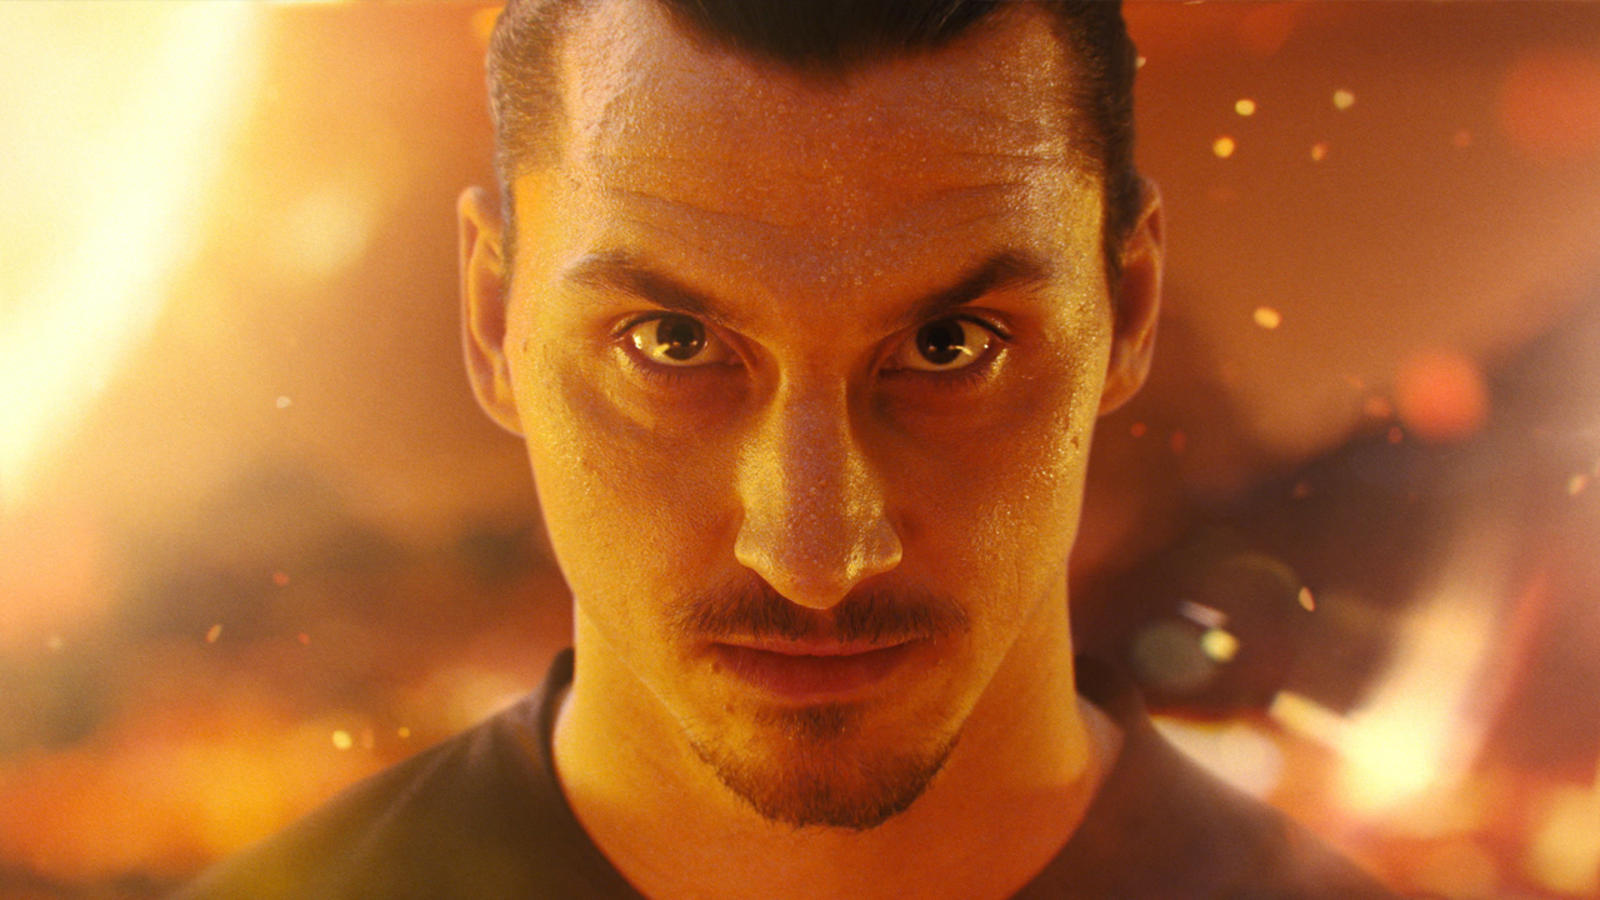 Zlatan - Get better with pressure